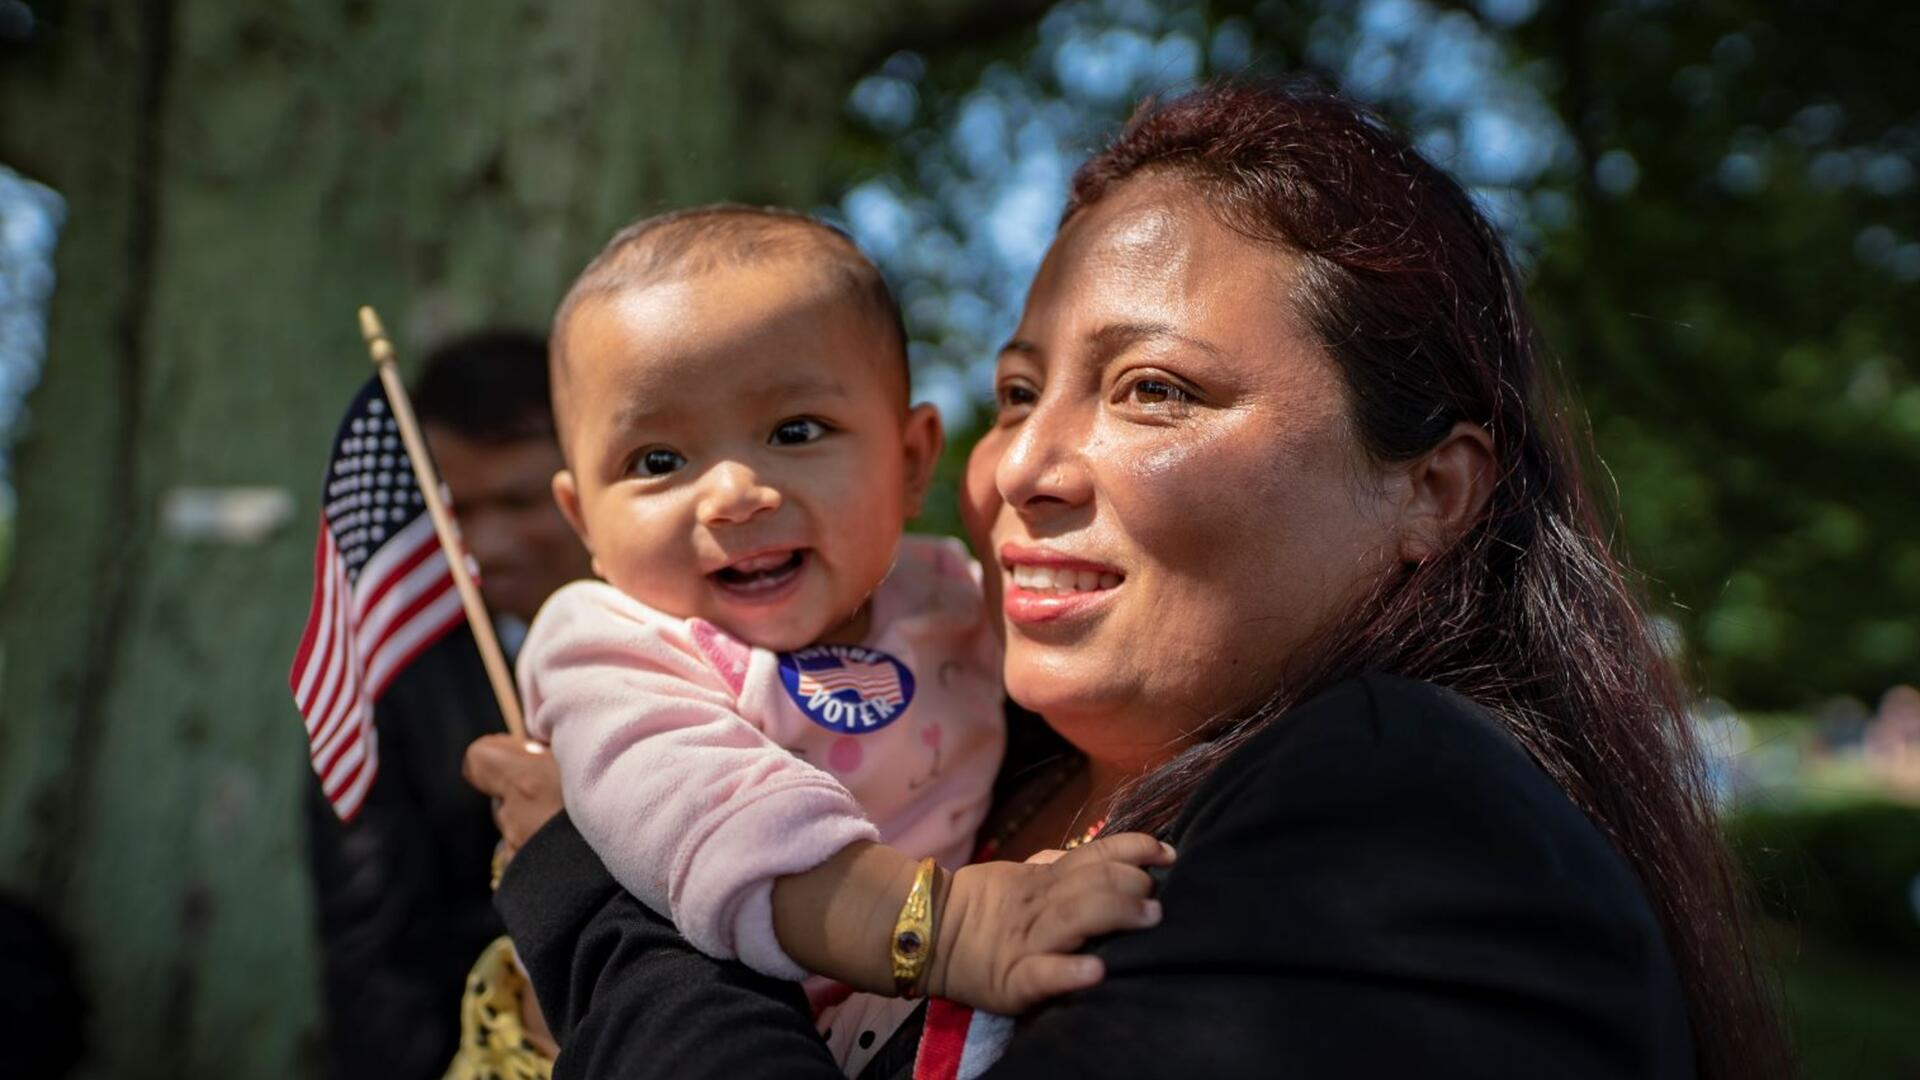 A newly naturalized citizen at a citizenship ceremony holds her baby and a small American flag. Both are smiling.